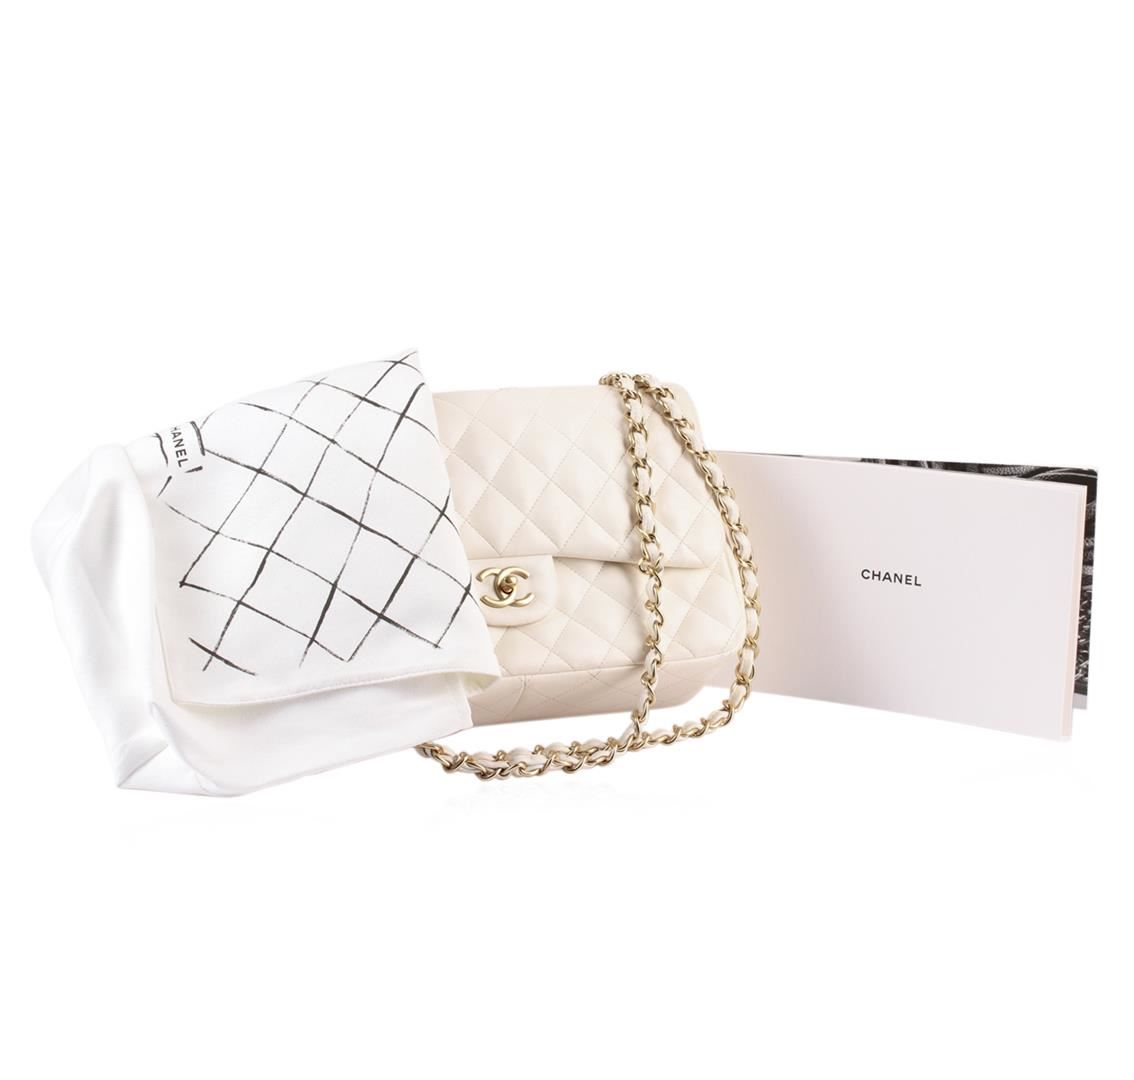 c37bf483c11a Image 1 : 100% Authentic Chanel Flap Bag Jumbo White Lambskin with Gold  Hardware ...